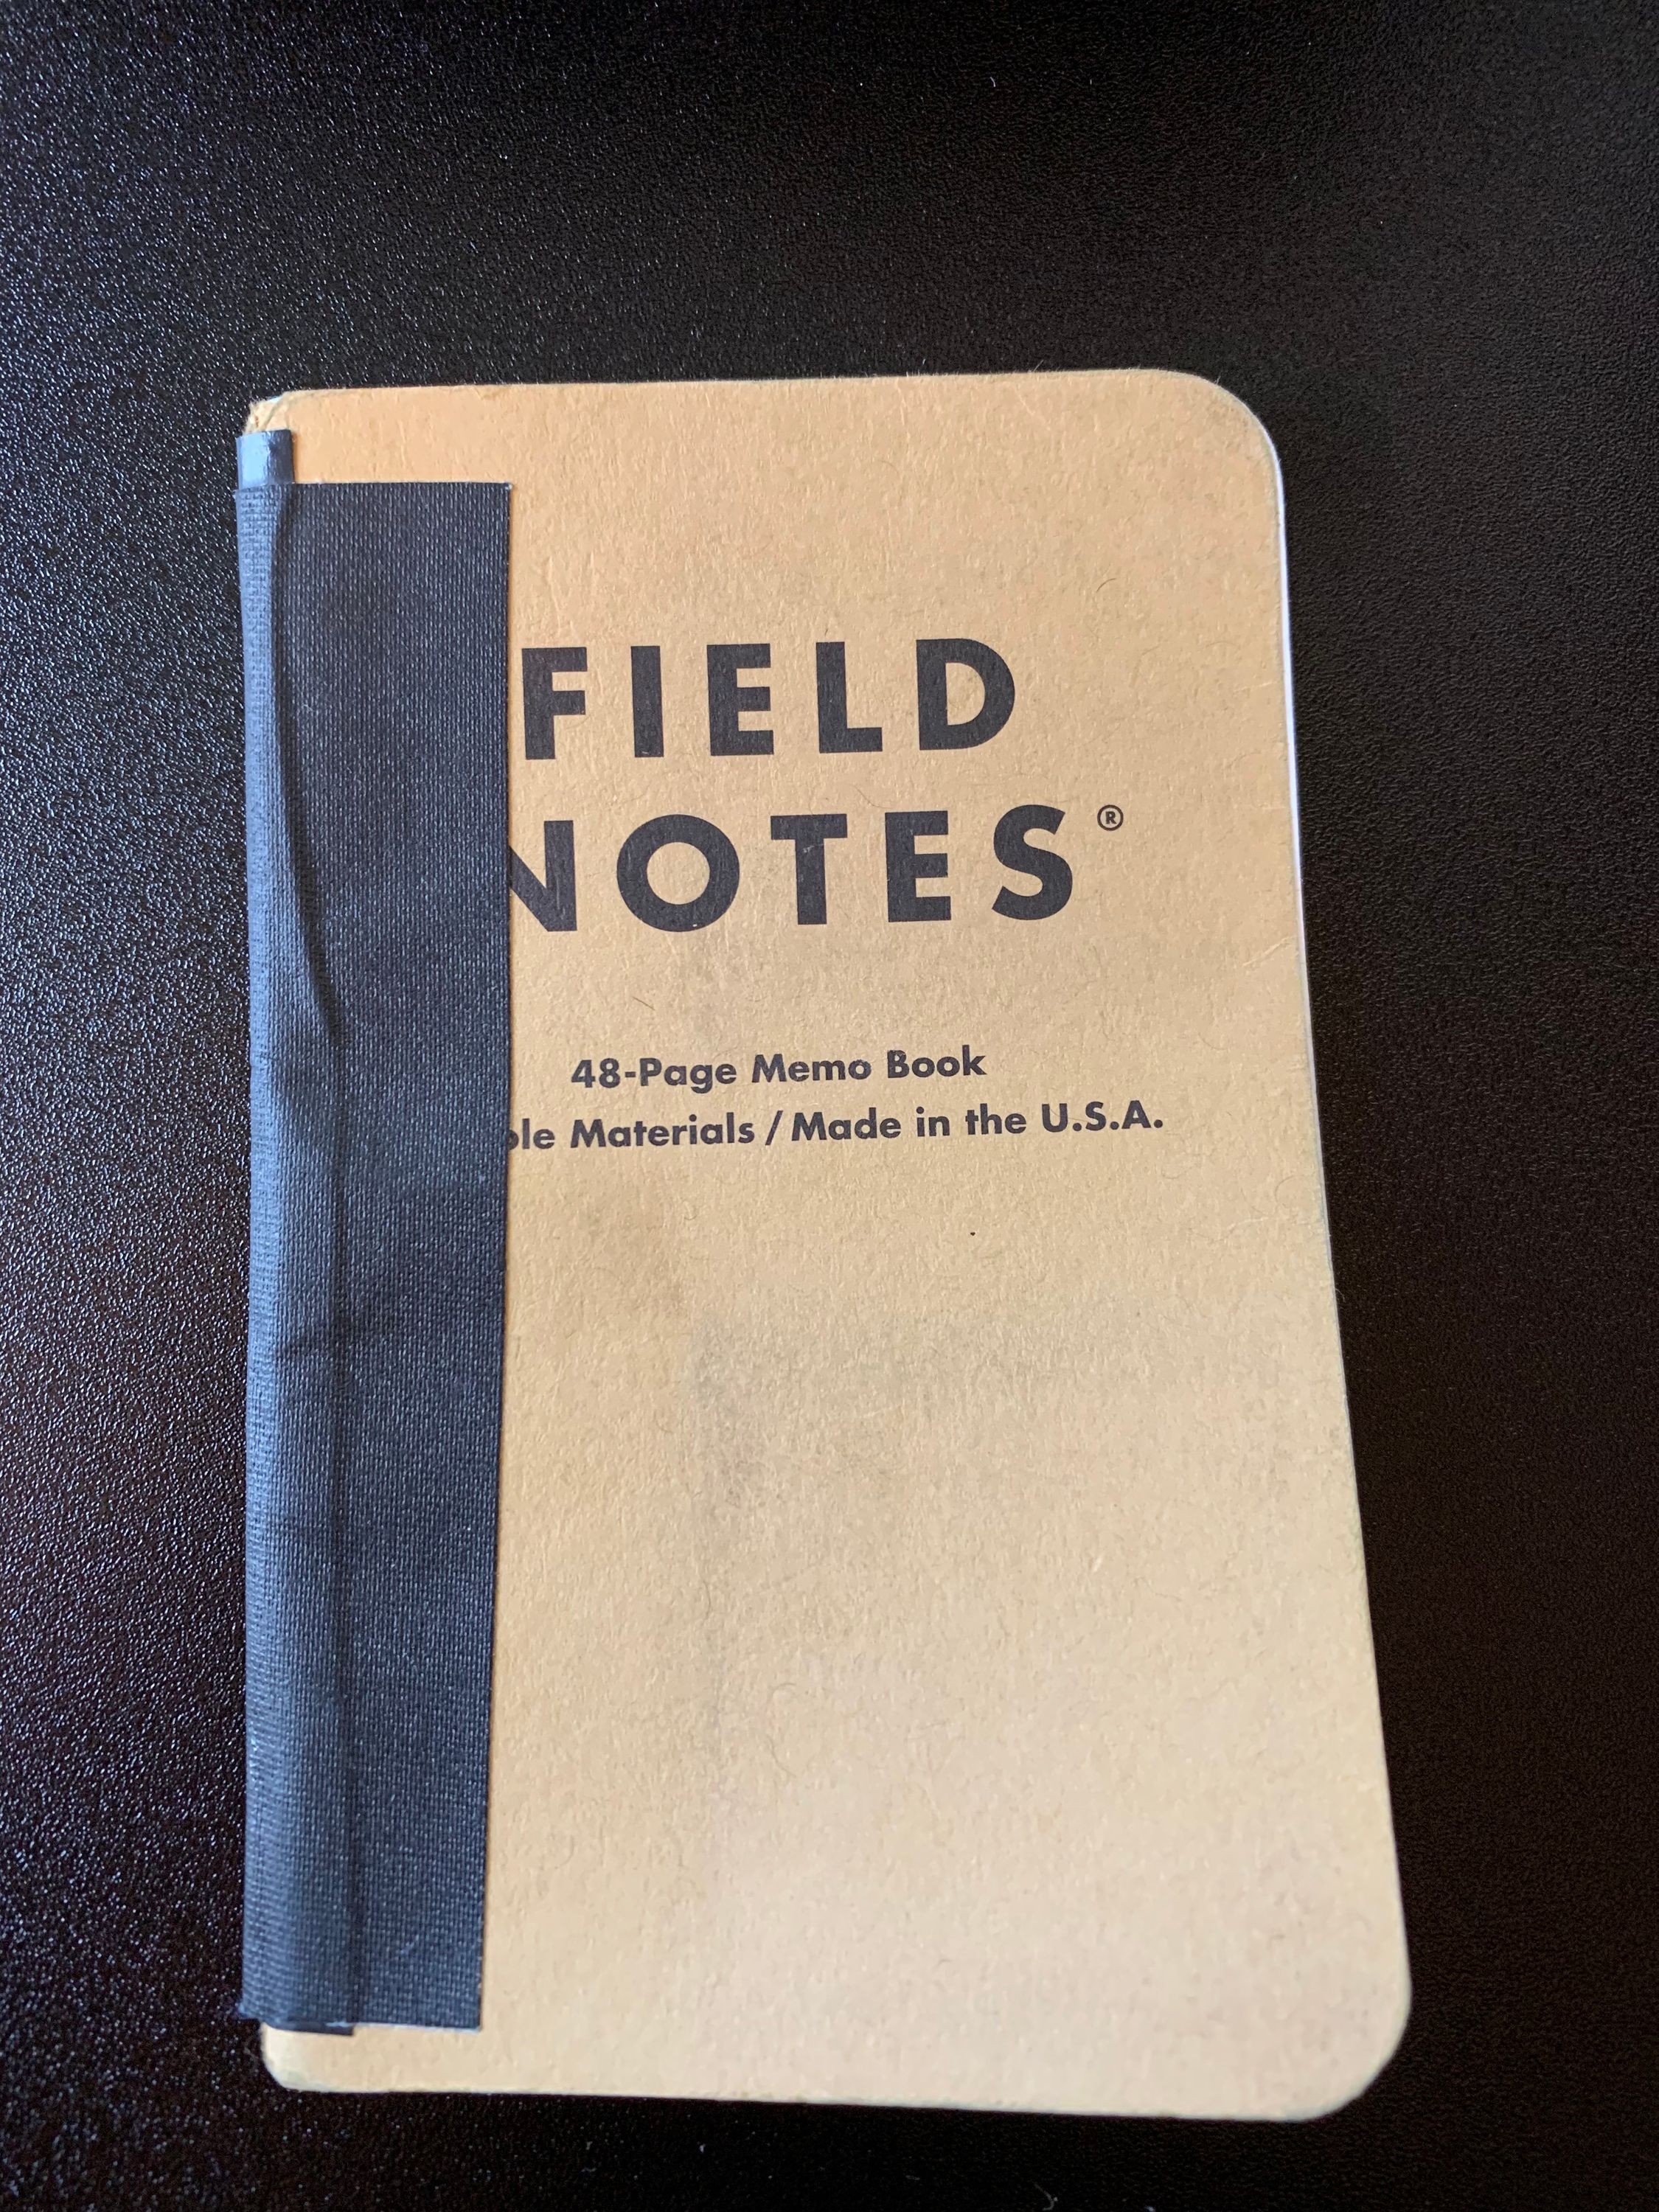 Field Notes Held together by Electrical Tape